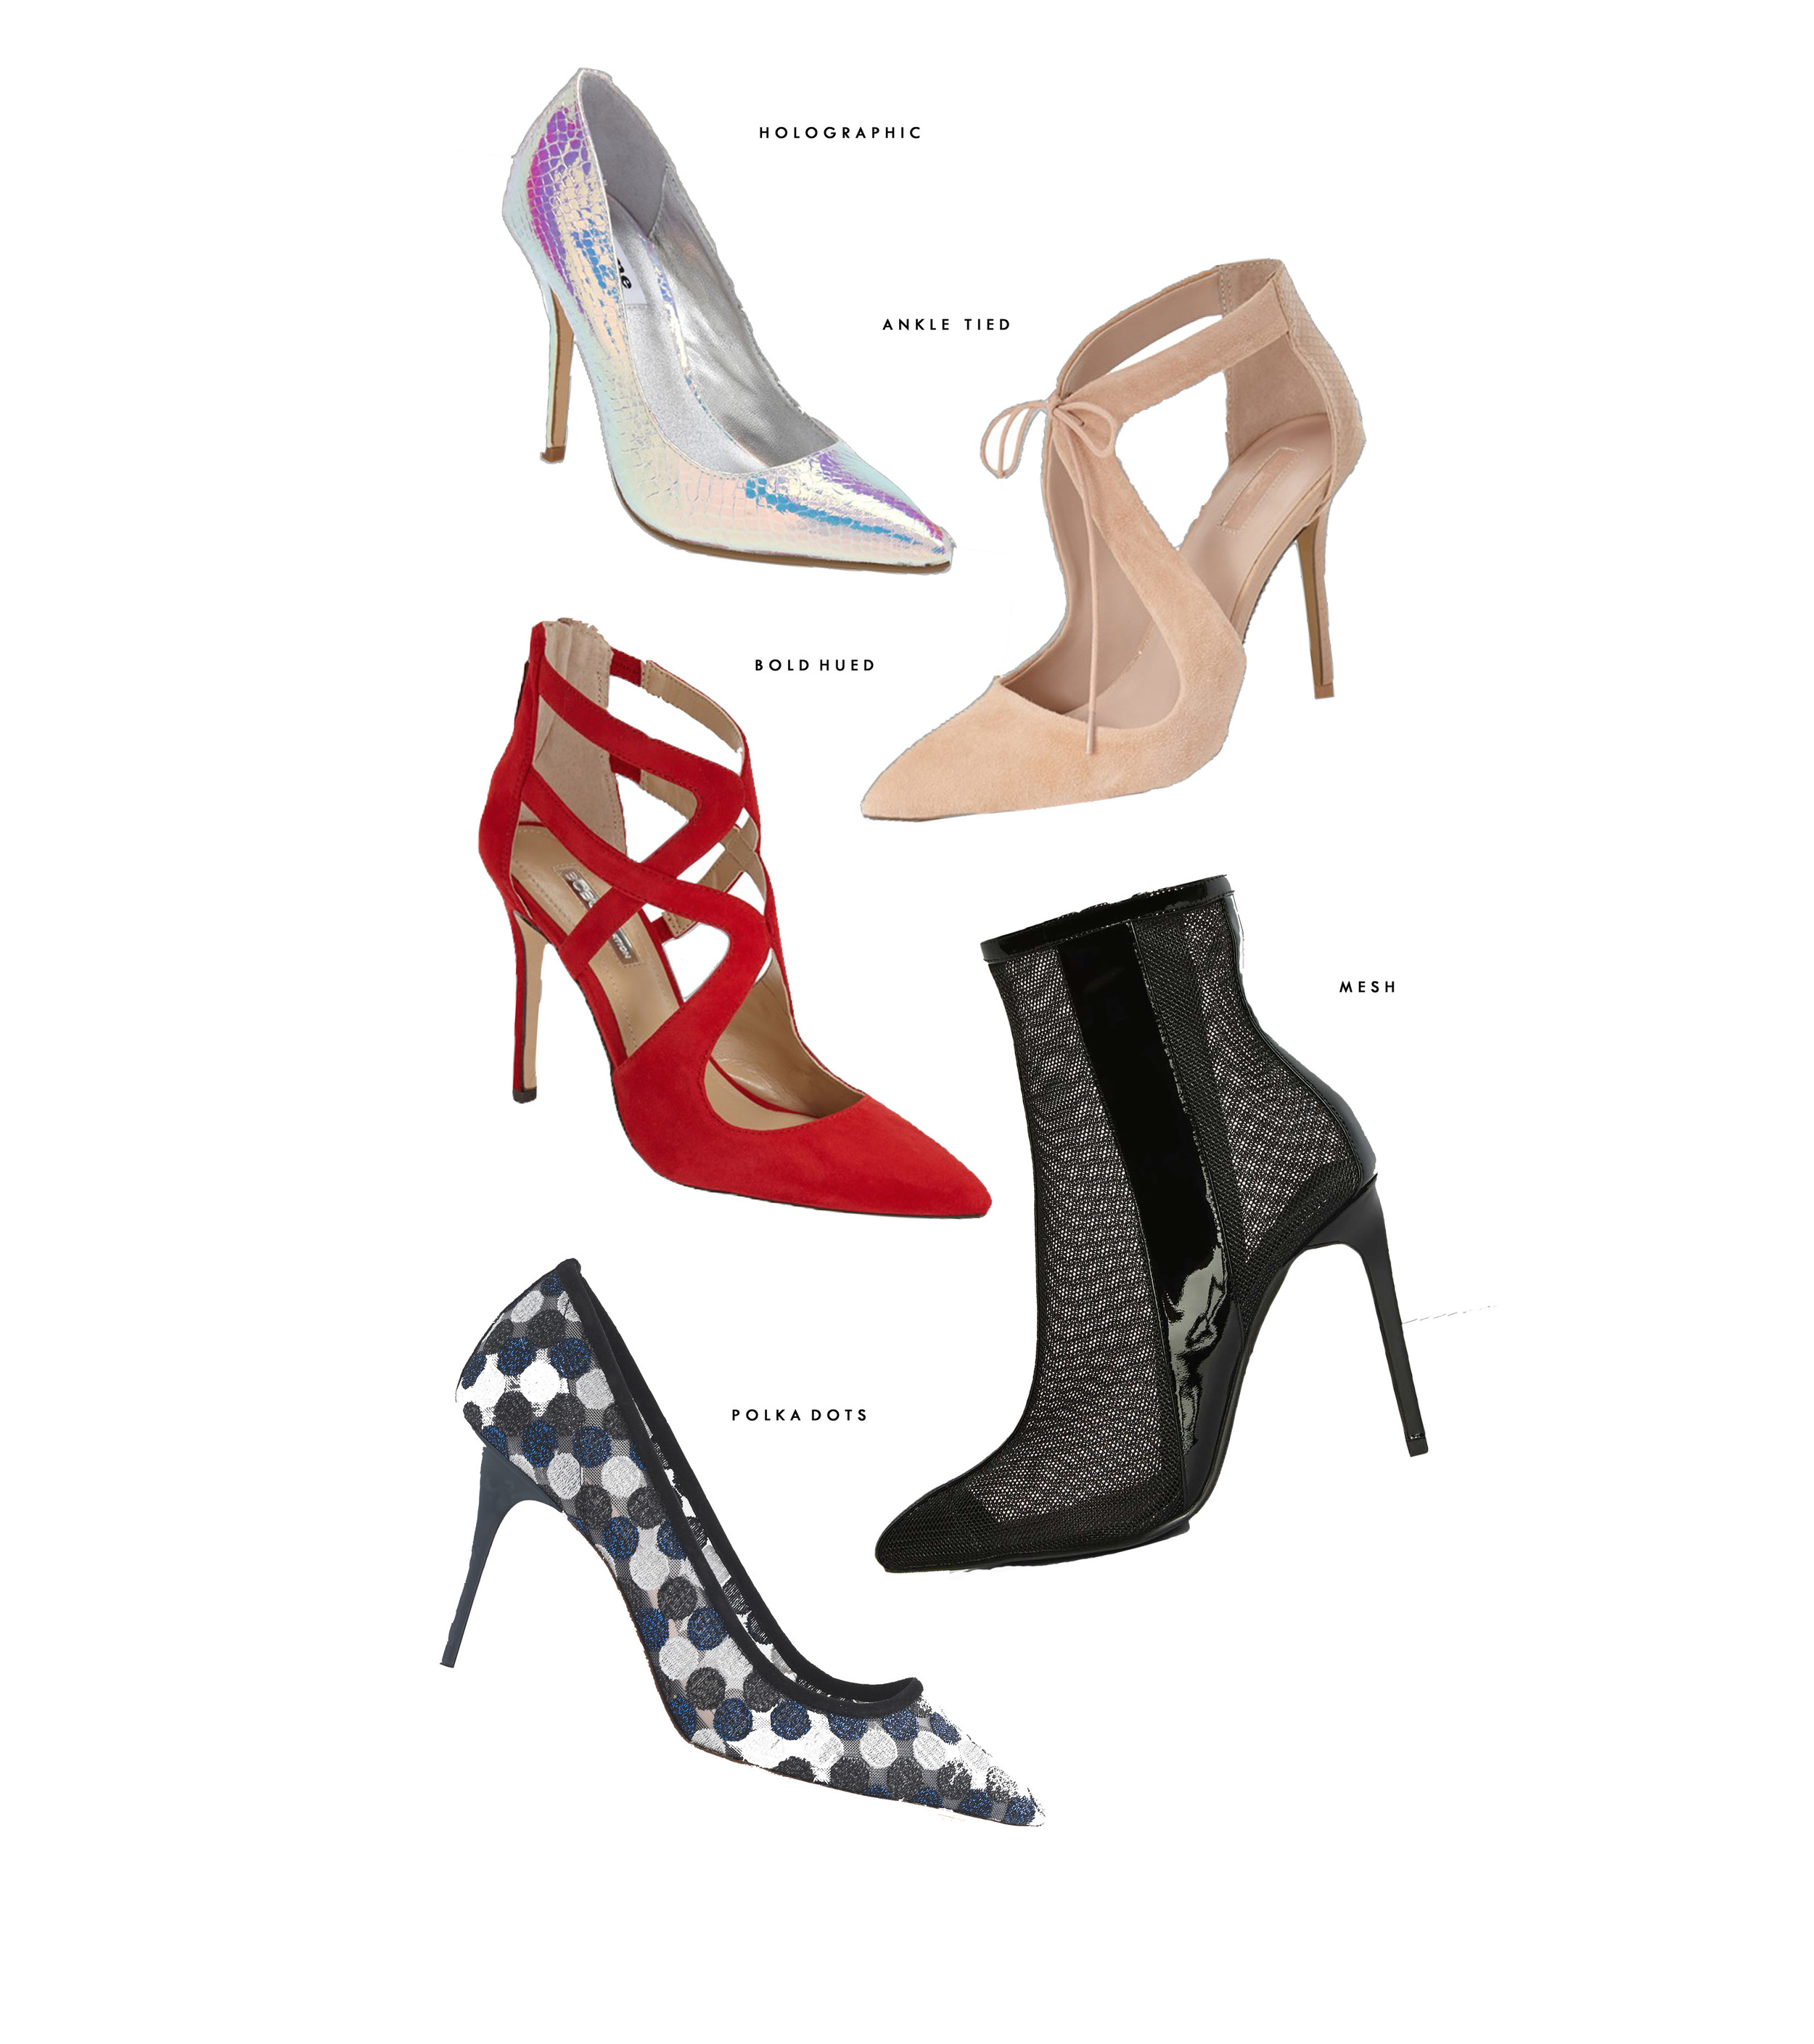 Playful Pumps for Fall via. Birdie Shoots